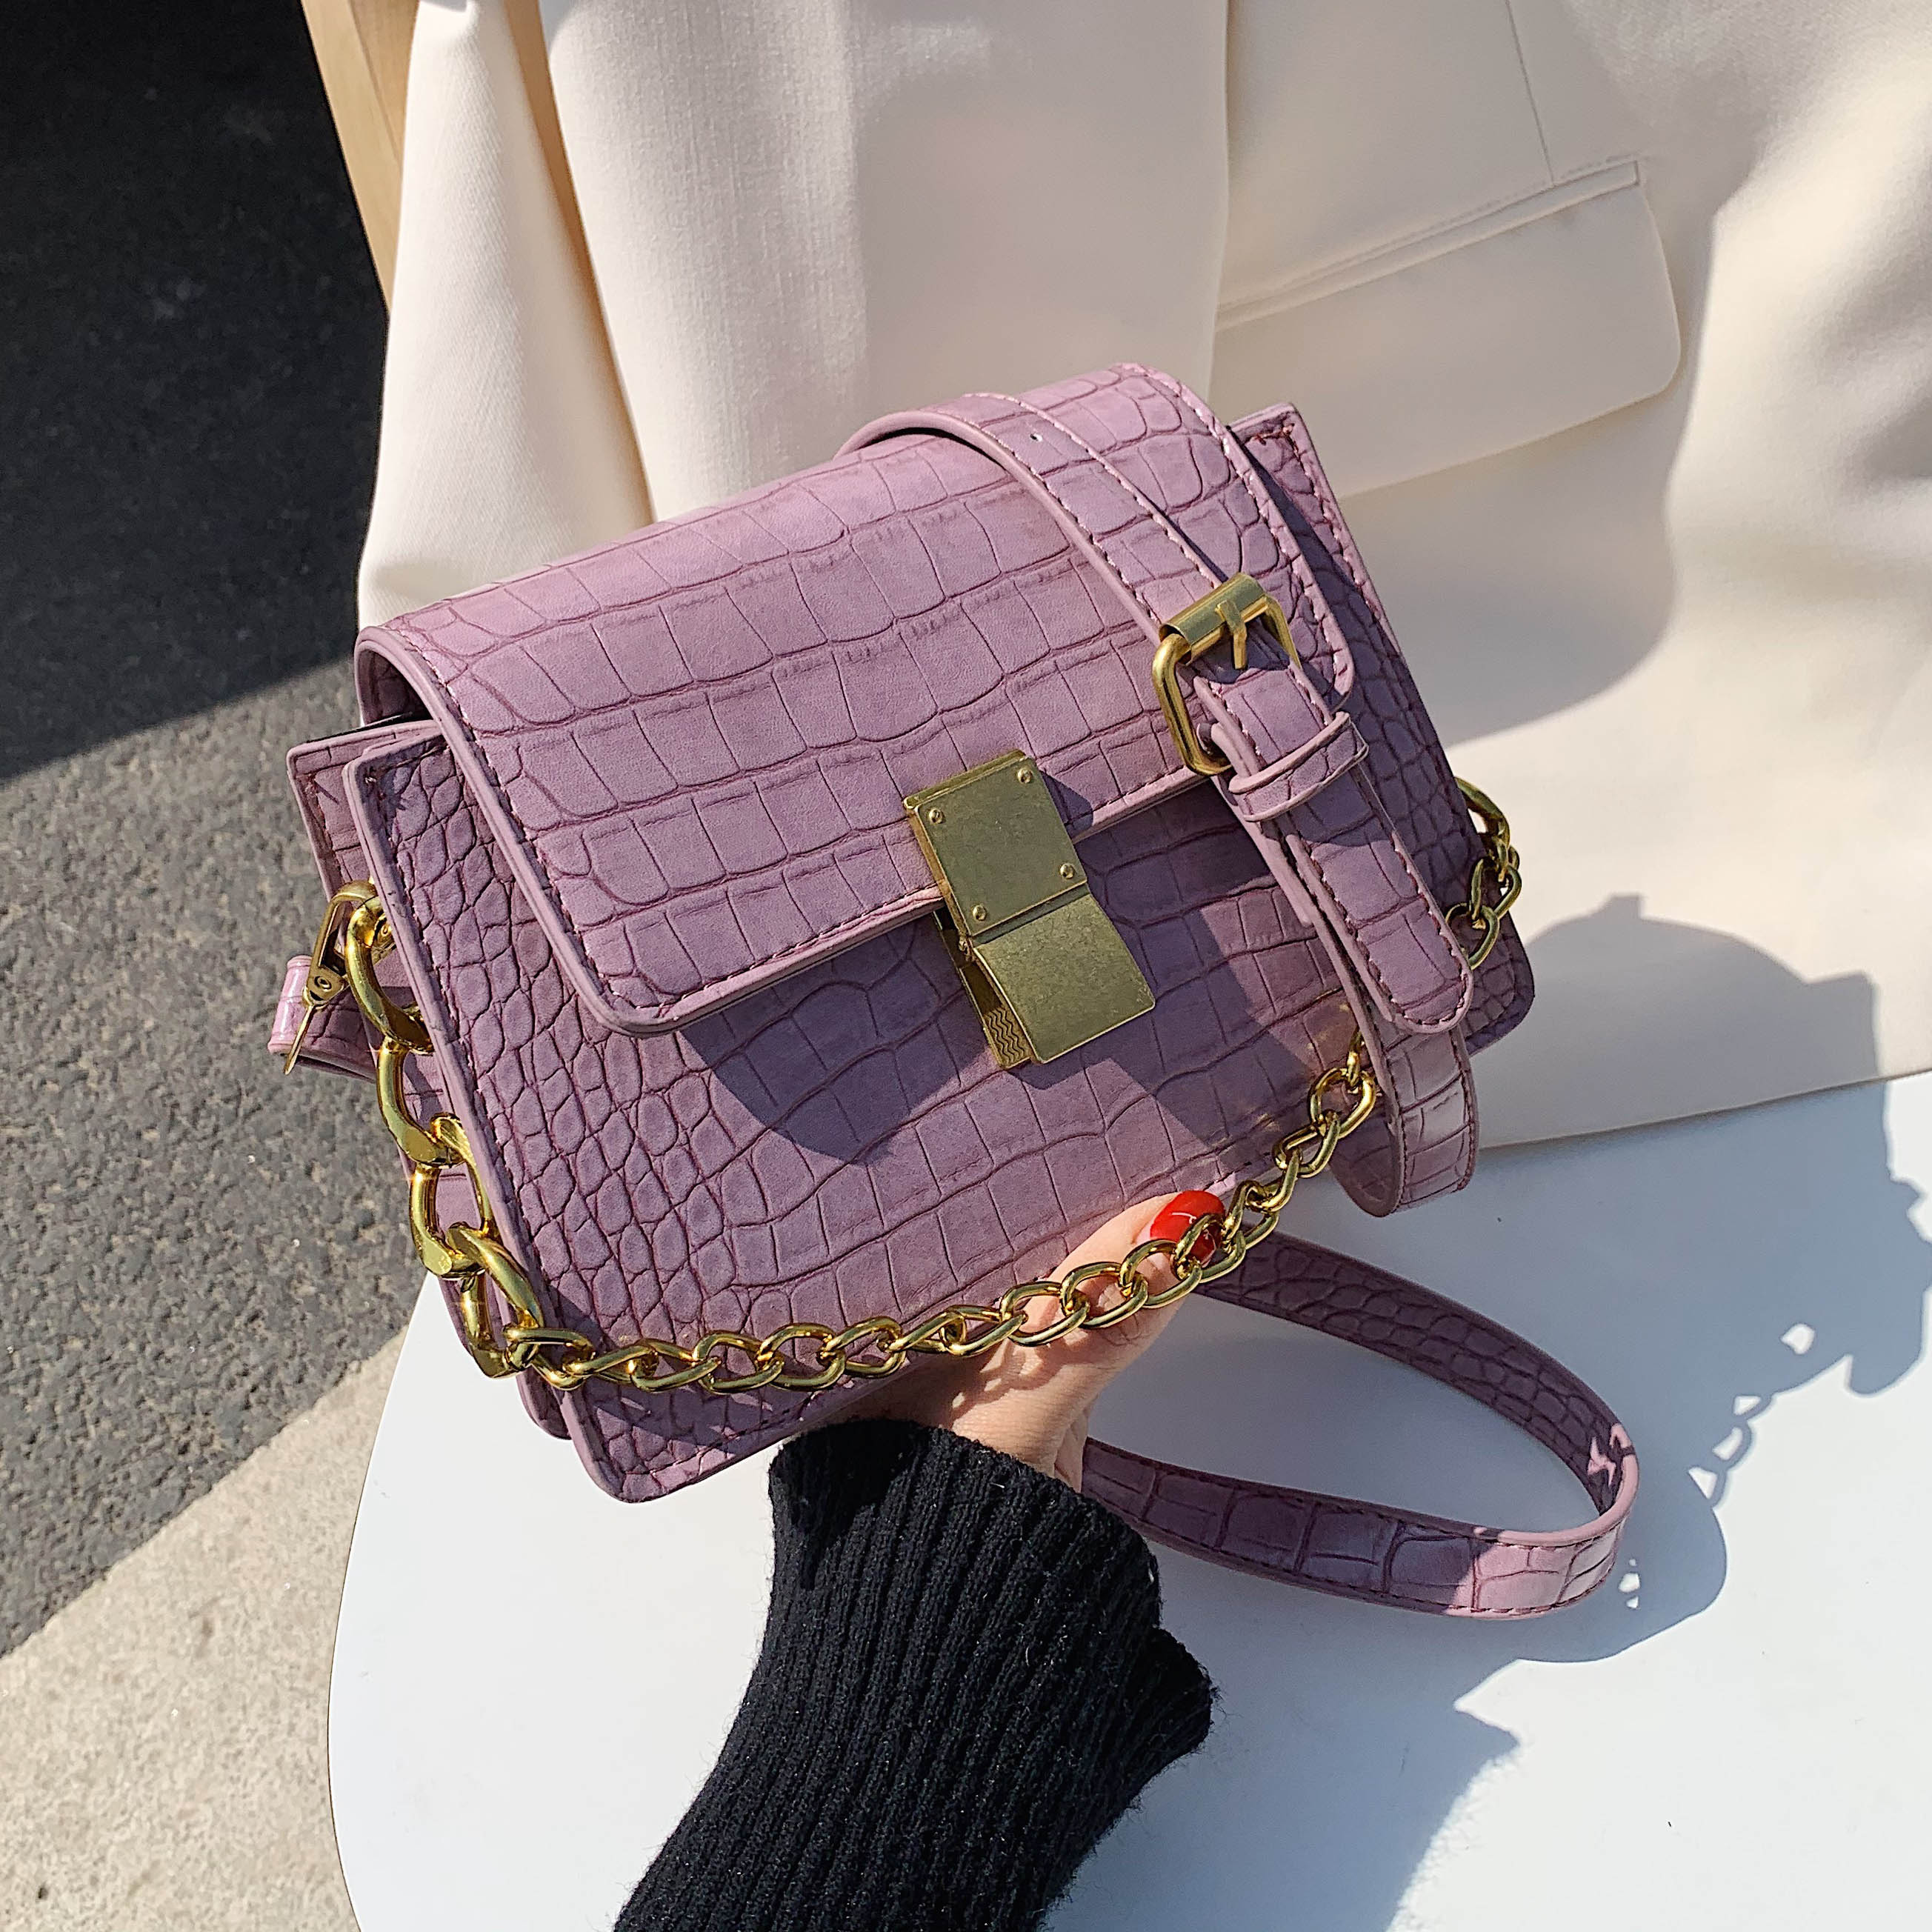 Crocodile Pattern Purple Pu Leather Crossbody Bags For Women 2020 Summer Chain Small Shoulder Handbags Female Quality Totes